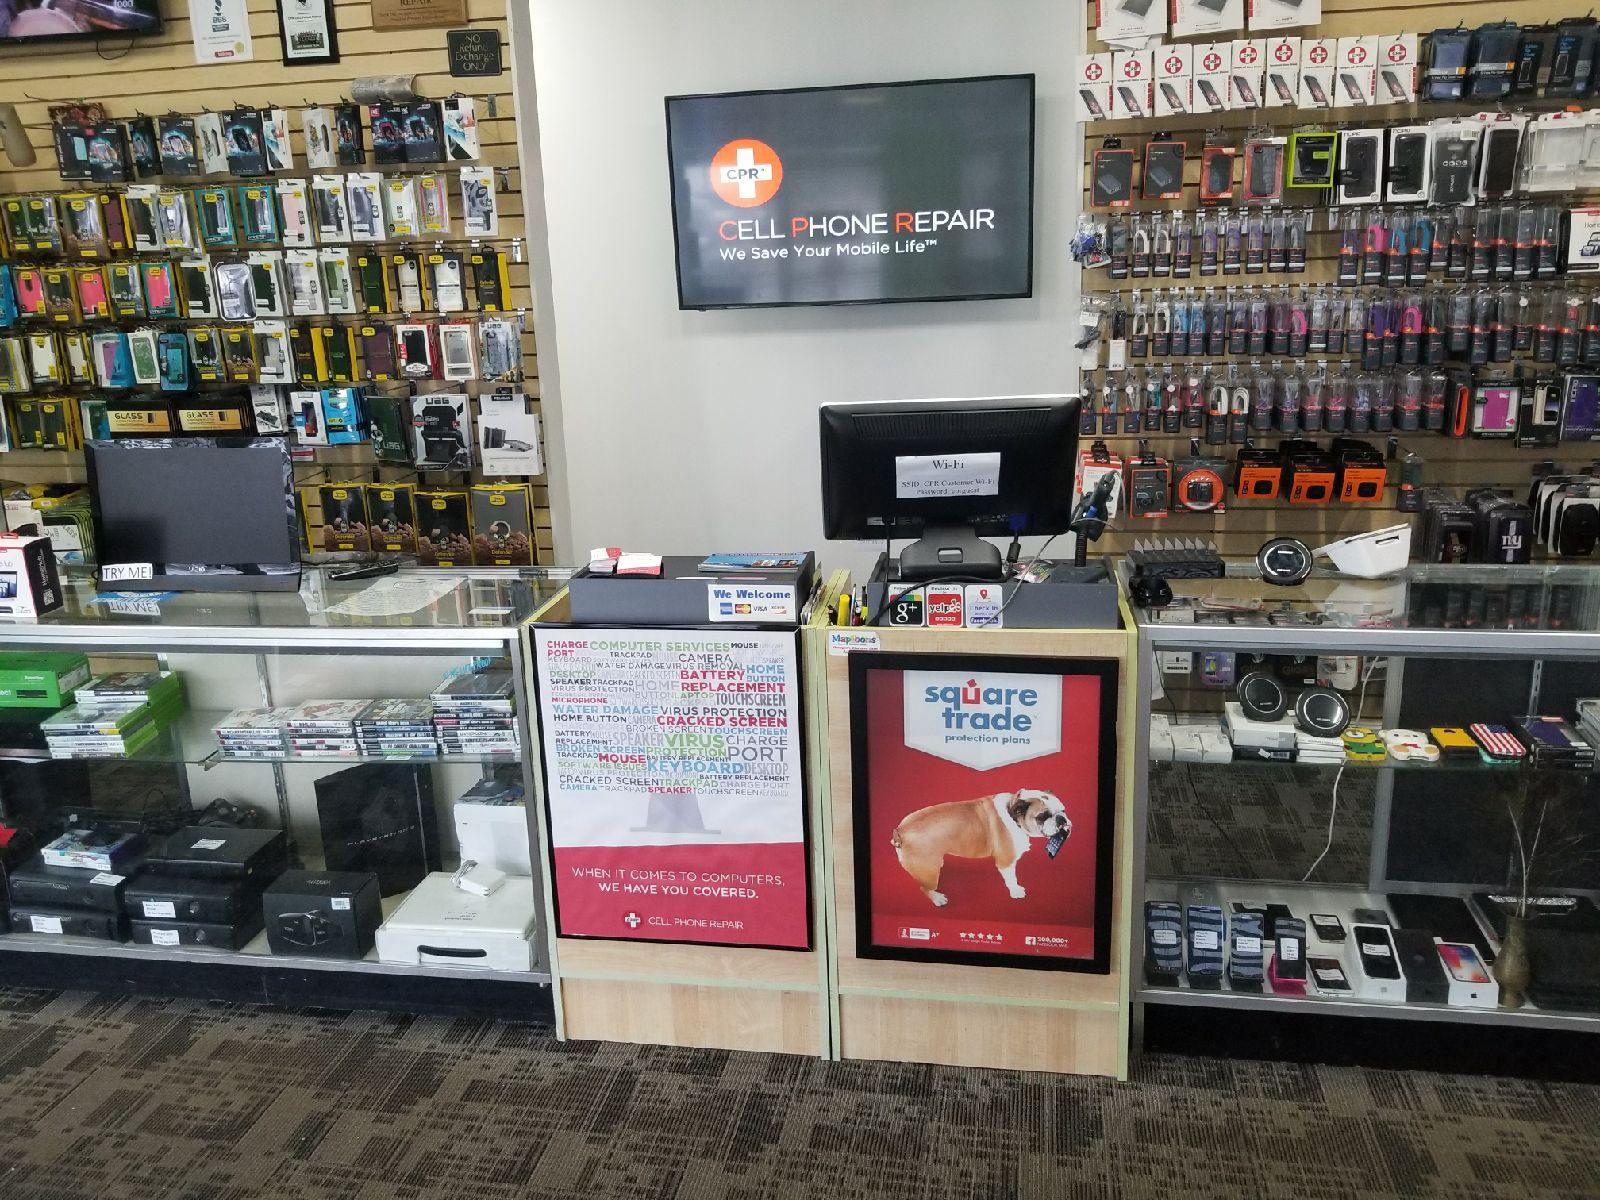 cpr cell phone repair Amityville NY - store interior